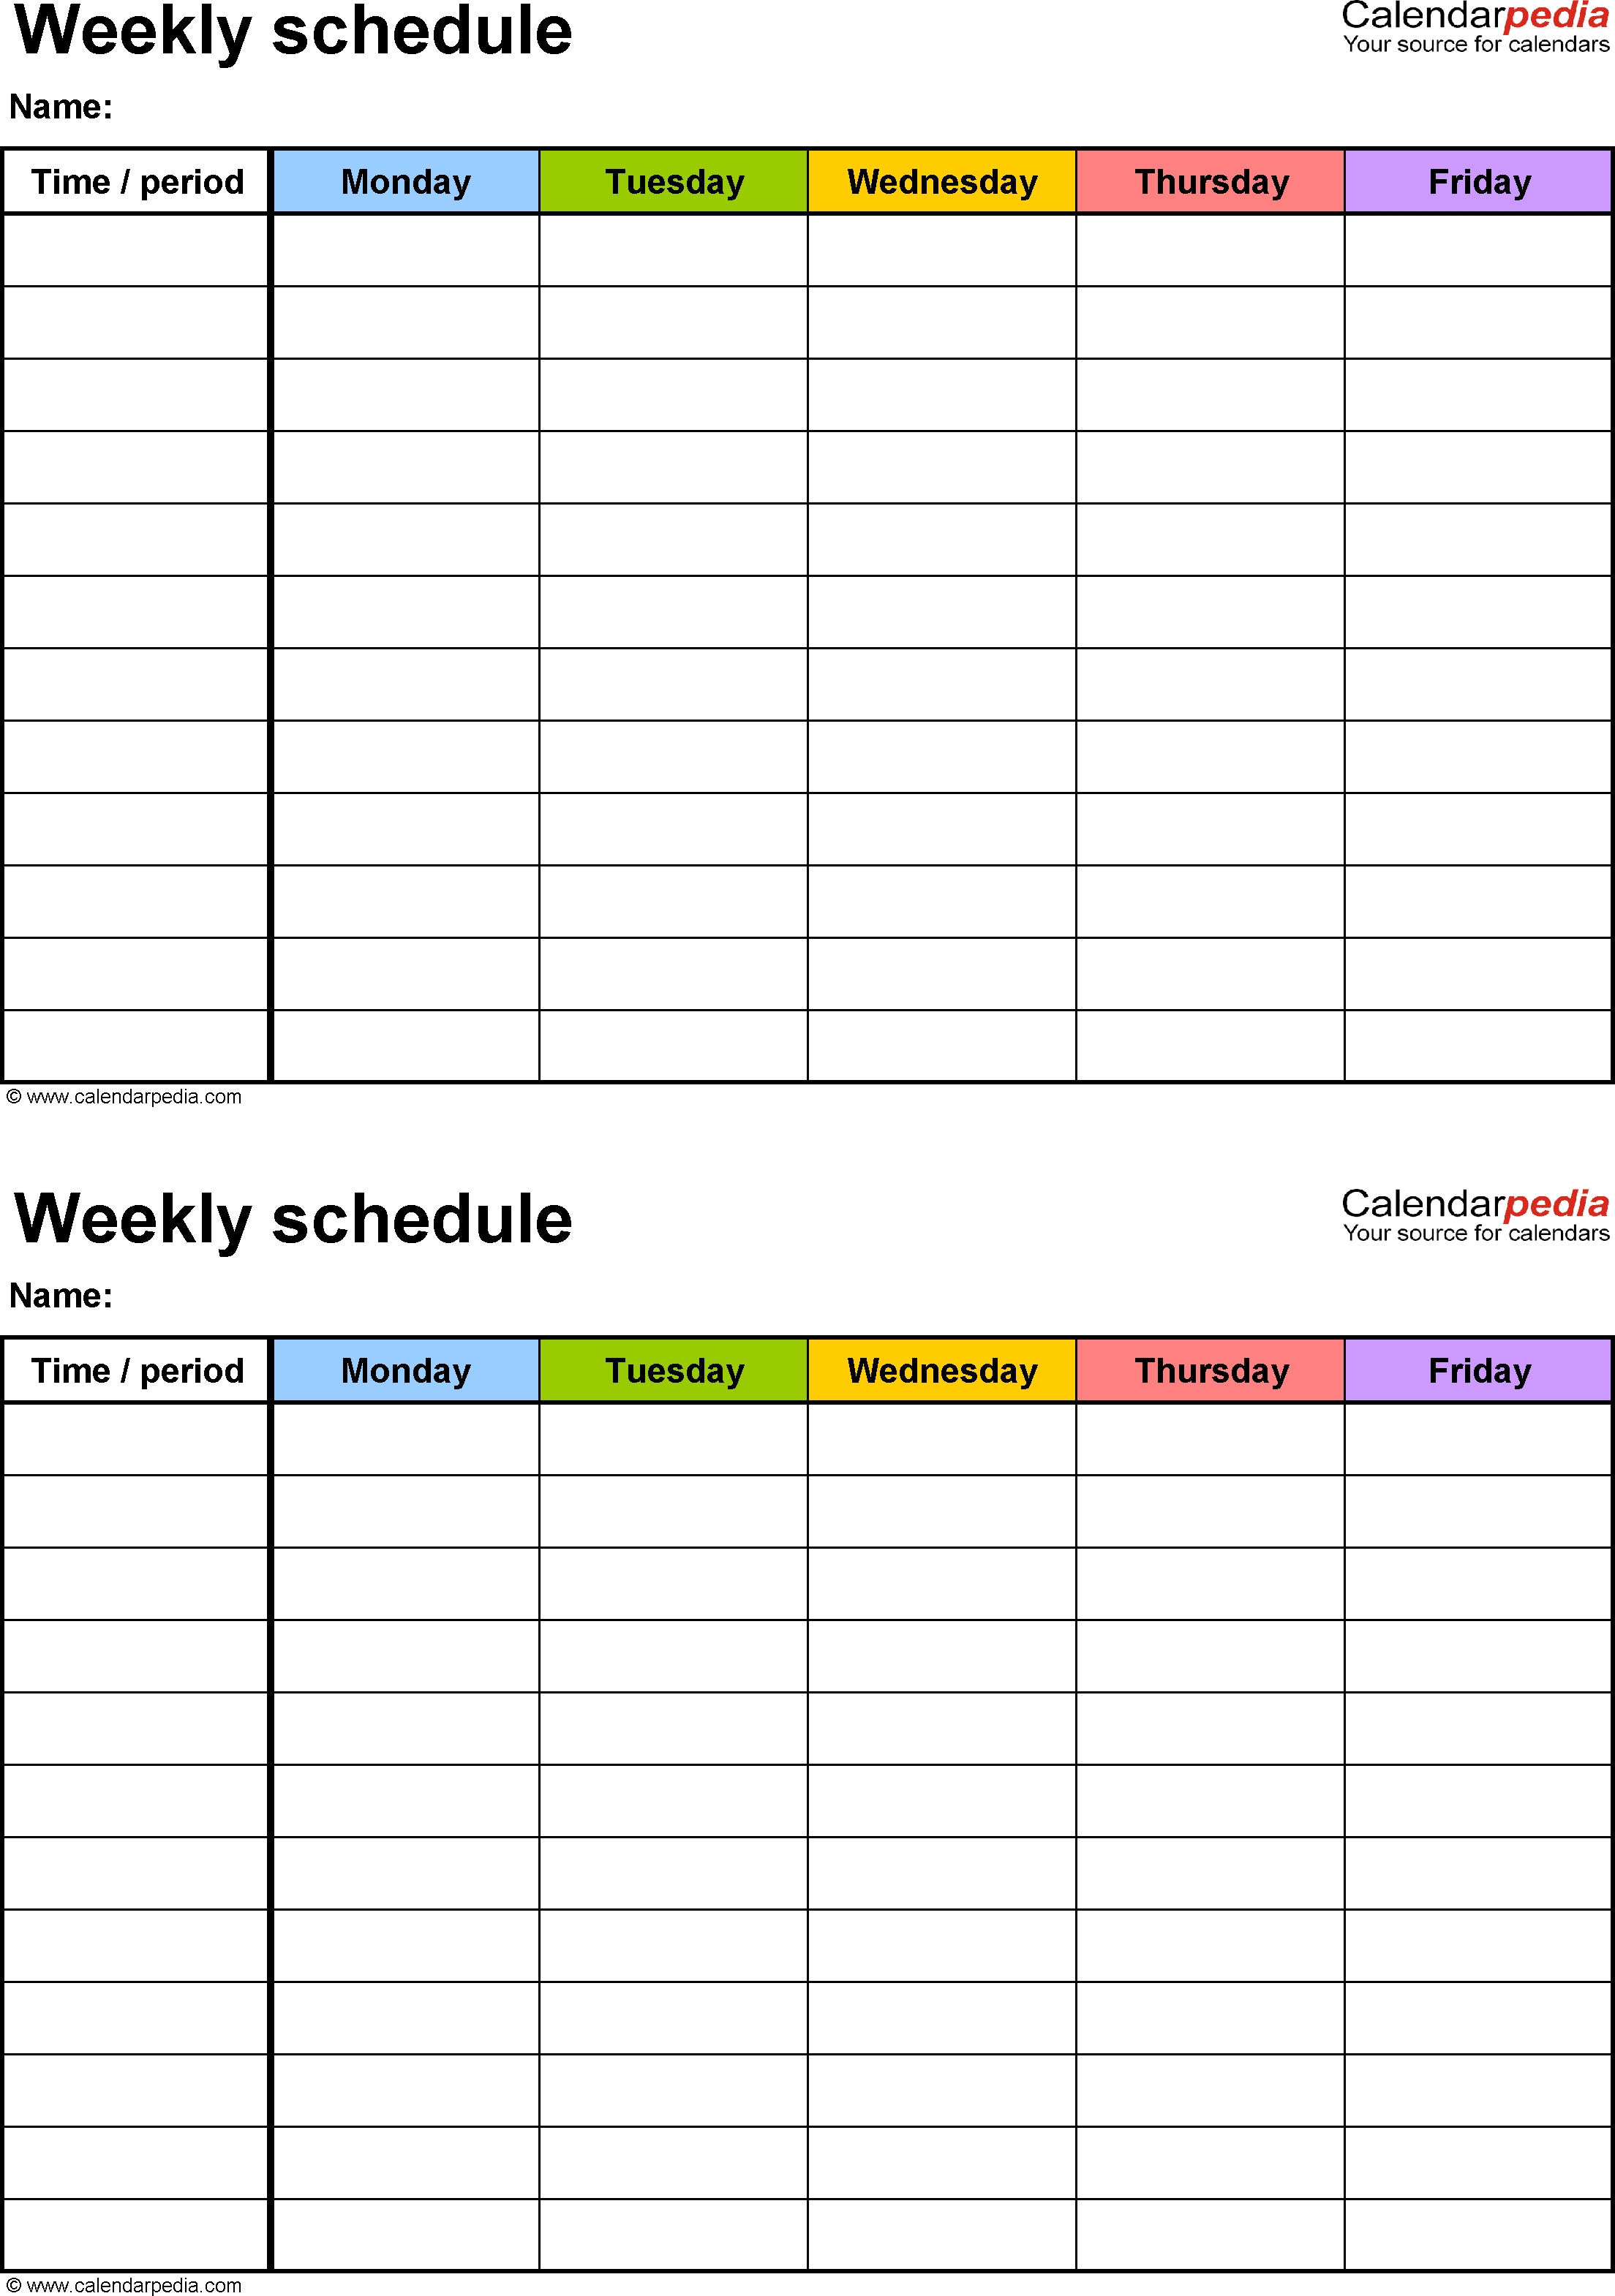 Free Weekly Schedule Templates For Excel - 18 Templates for Day By Day Schedule Template